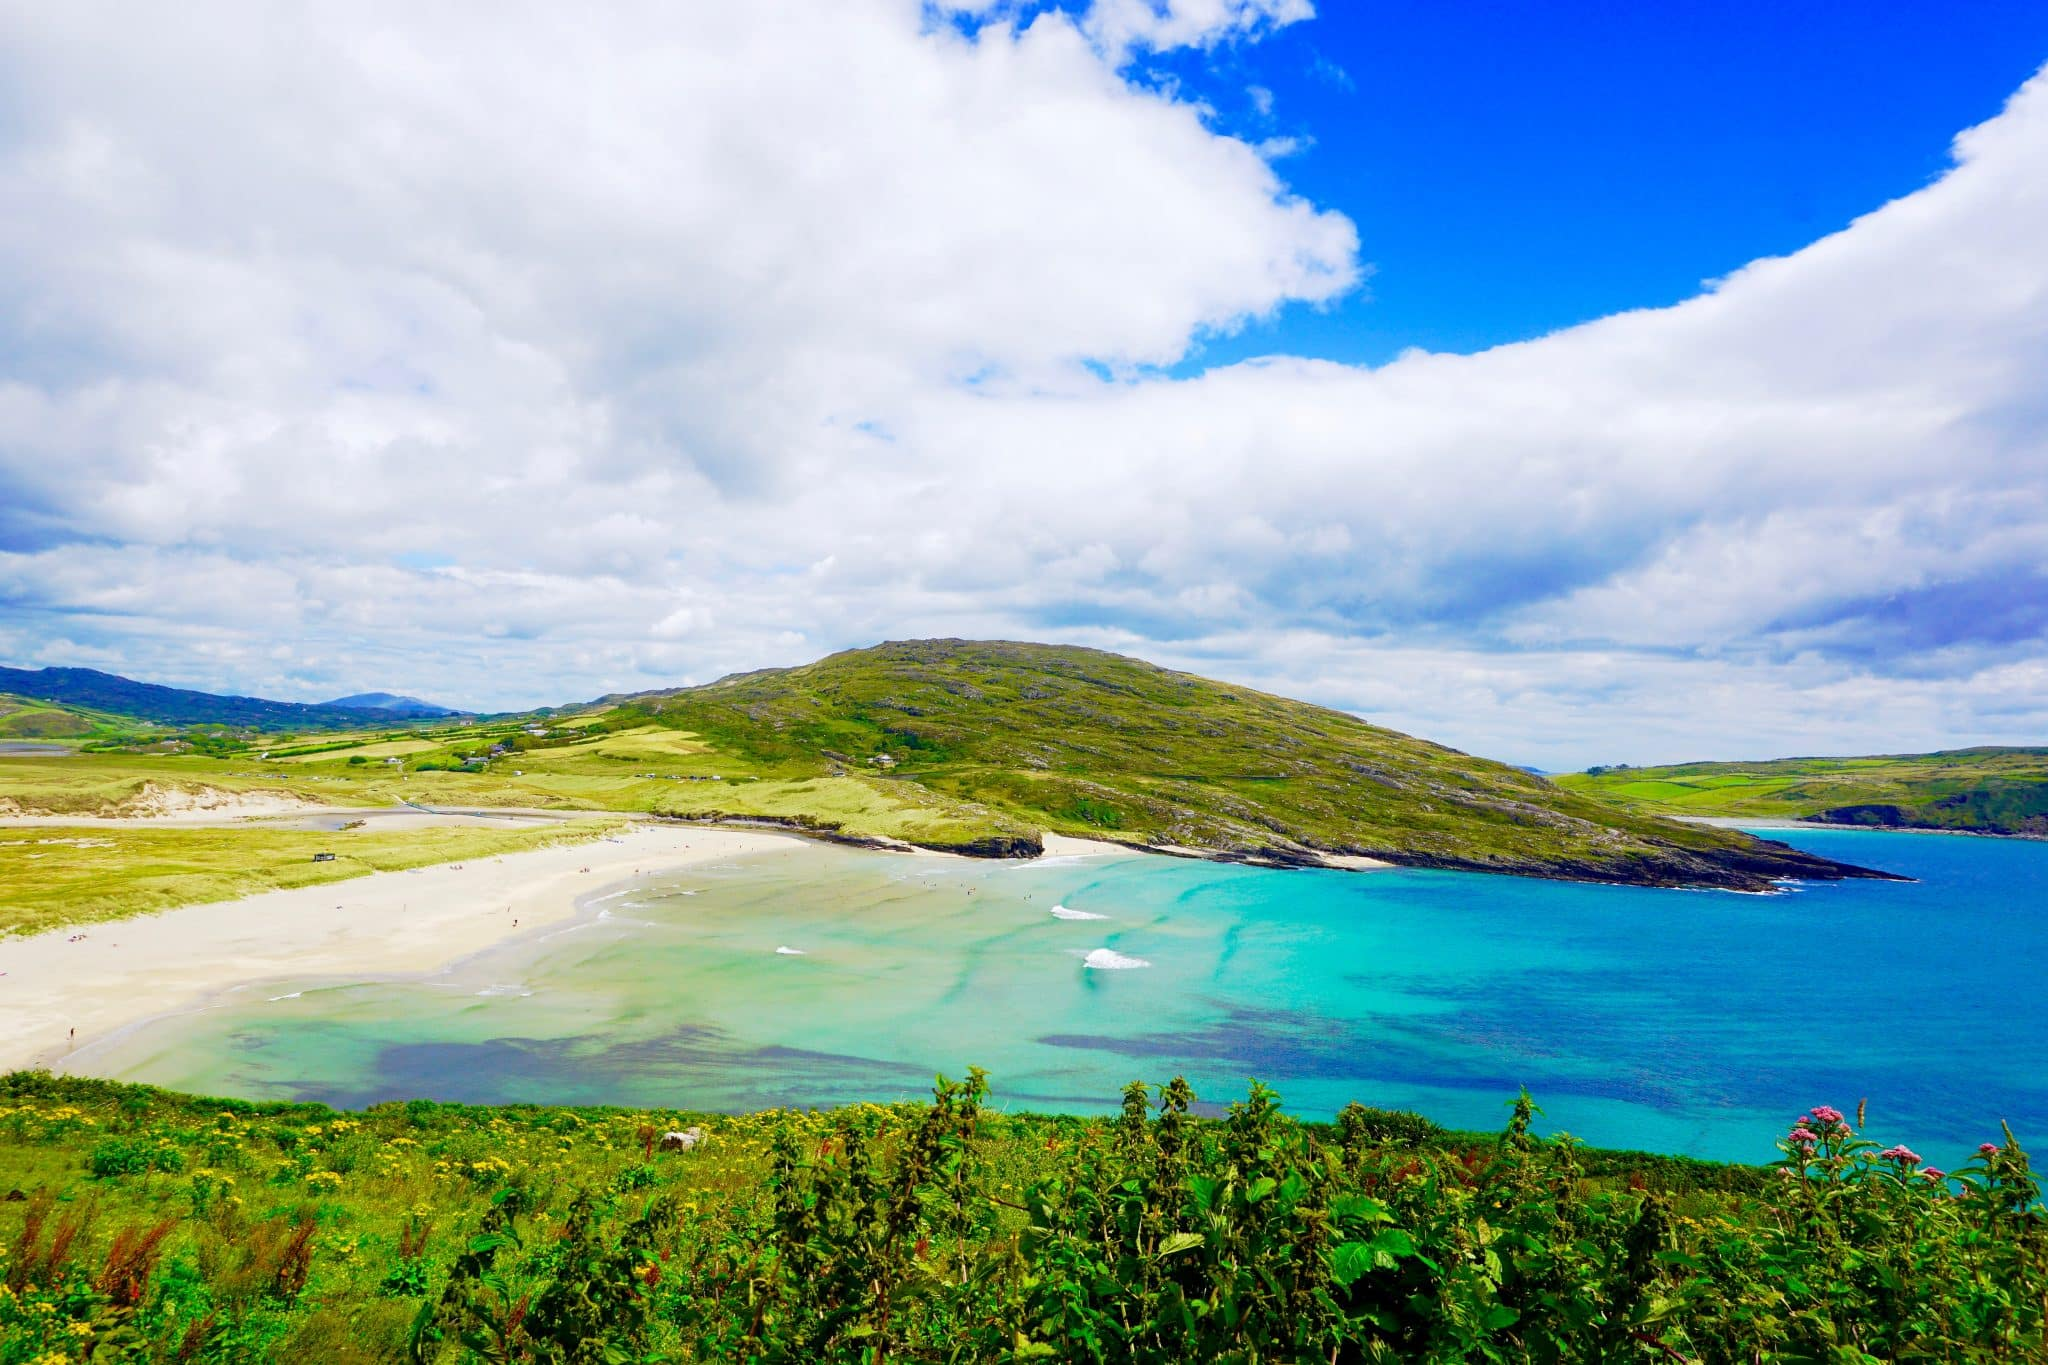 Barleycove Beach in Cork, Ireland, with a gorgeous blue water and lush green landscape along the Wild Atlantic Way.